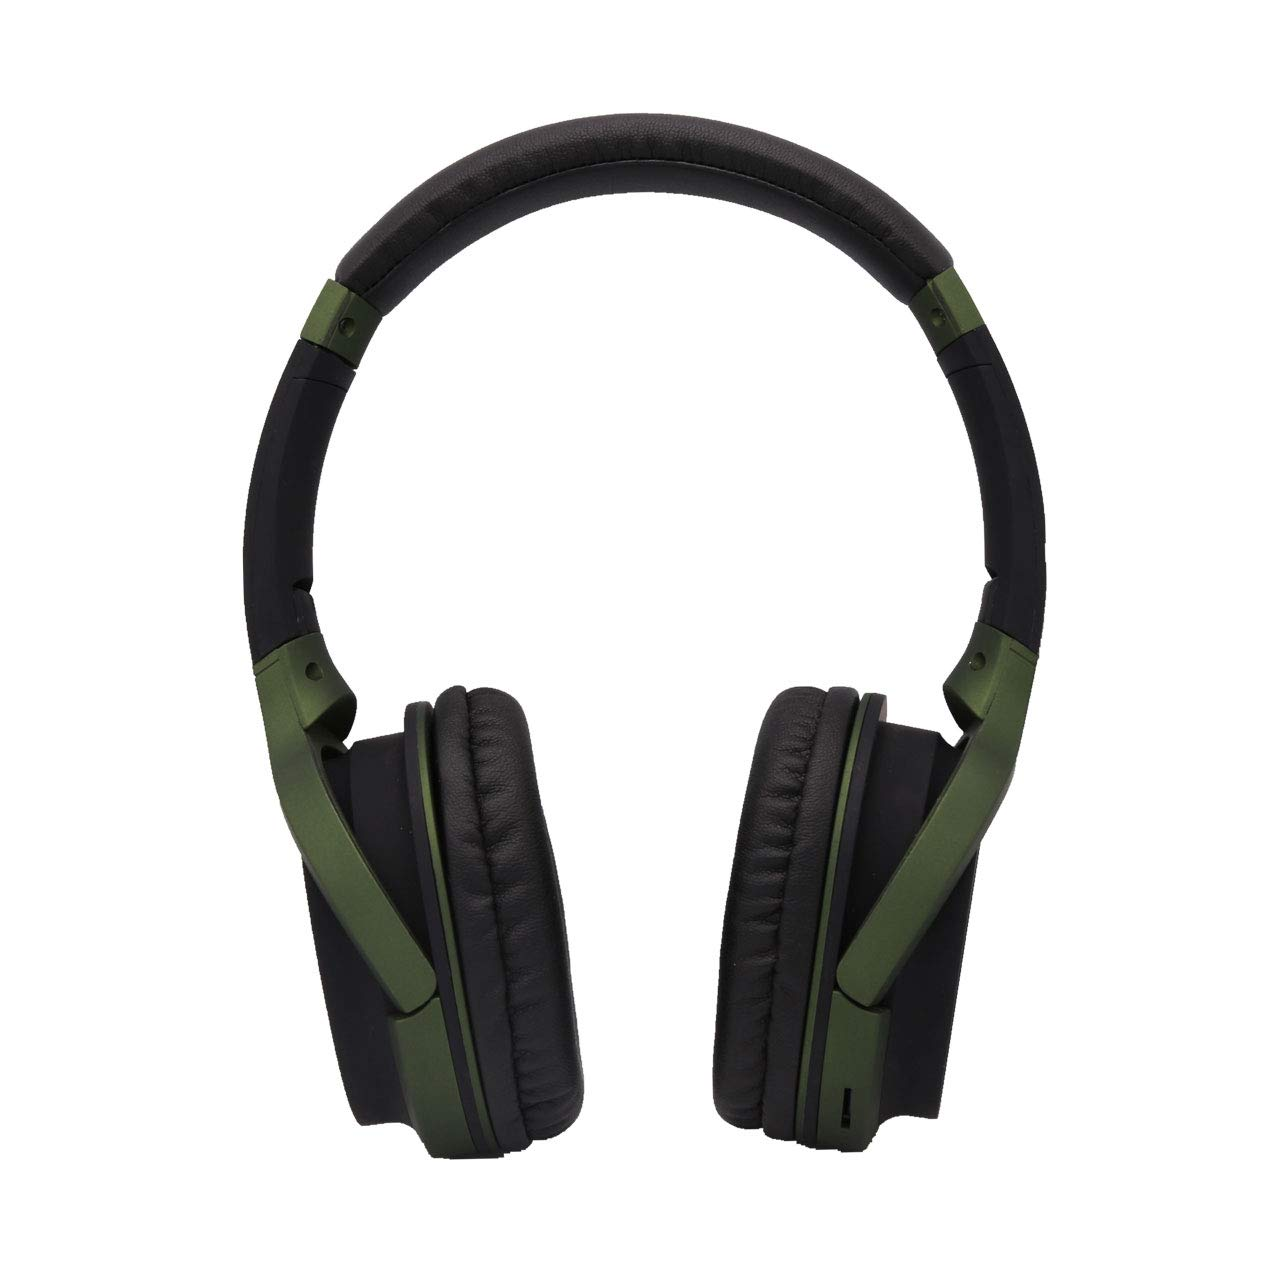 Headphones Over Ear, PIN&L Wired Stereo Headphones, Retractable Lightweight Foldable Sports Headphones with Mic - Blackish Green